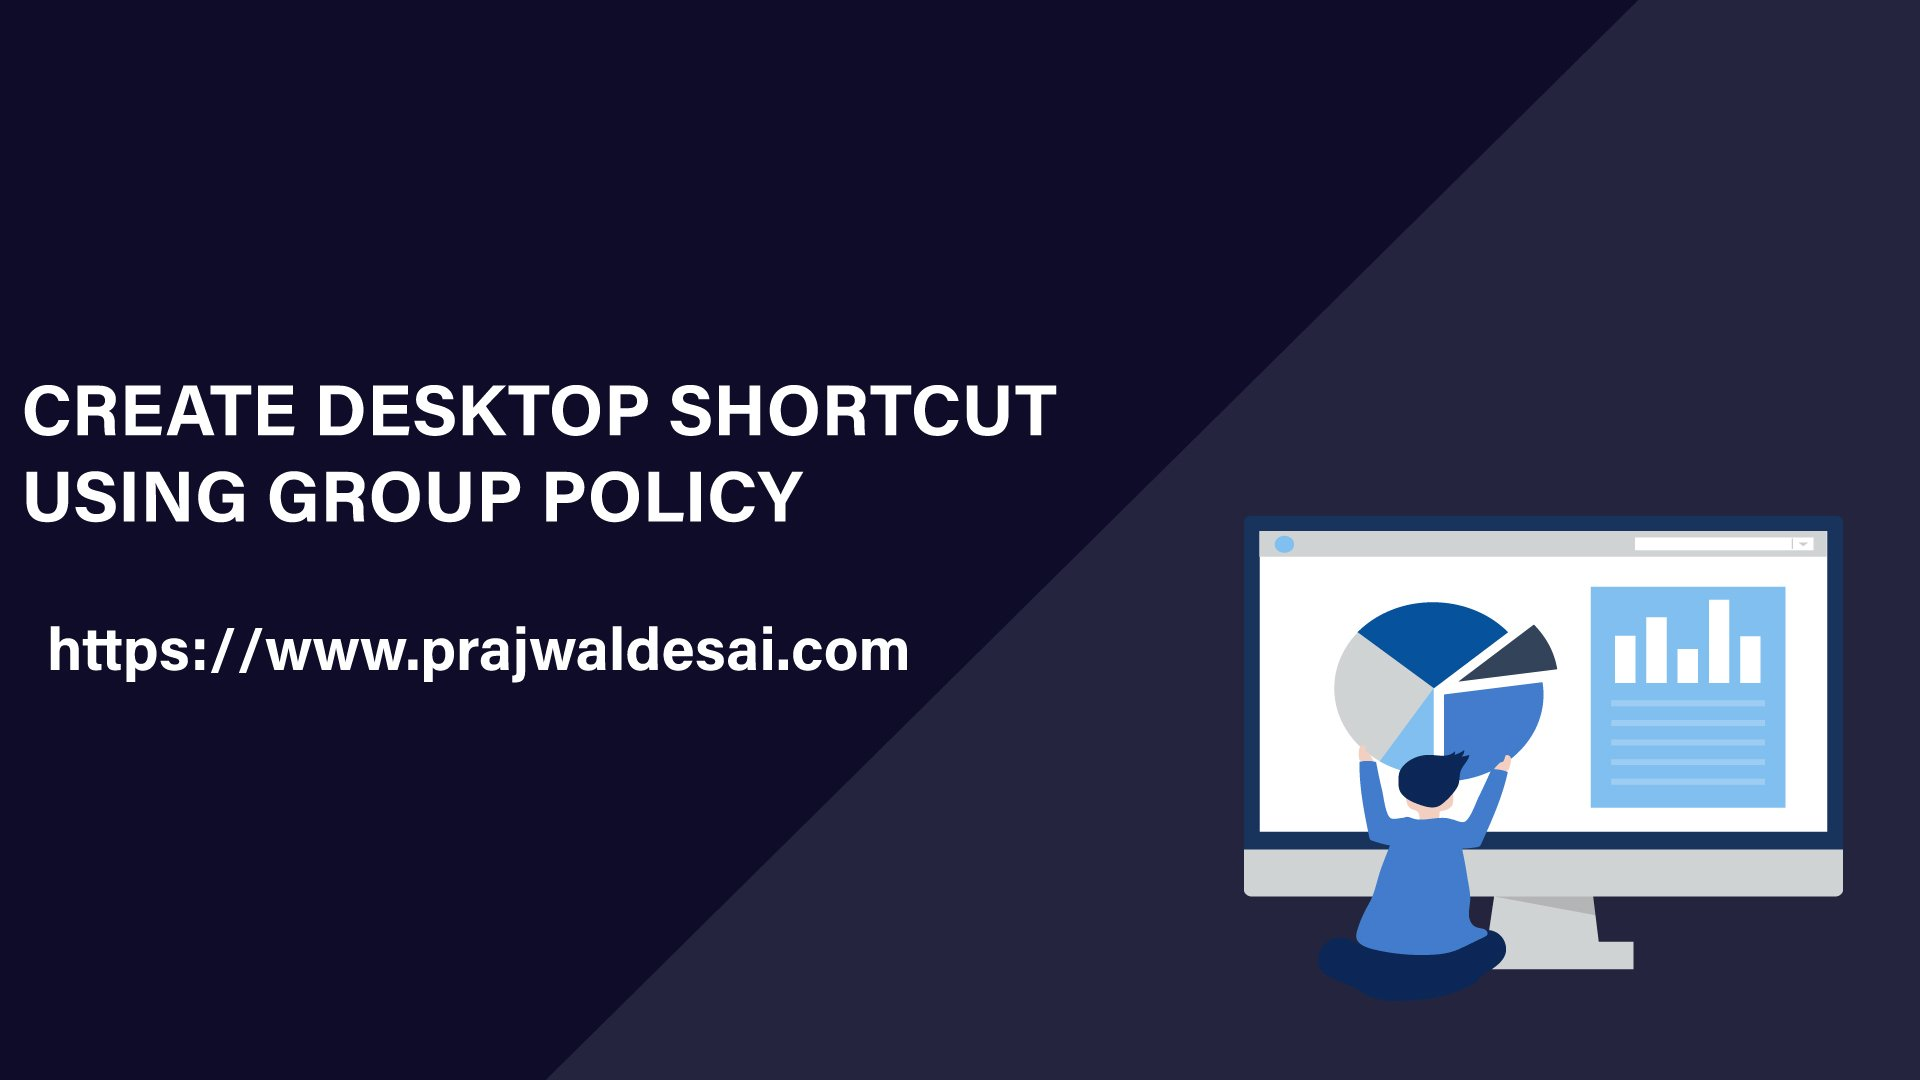 Create Desktop Shortcut using Group Policy